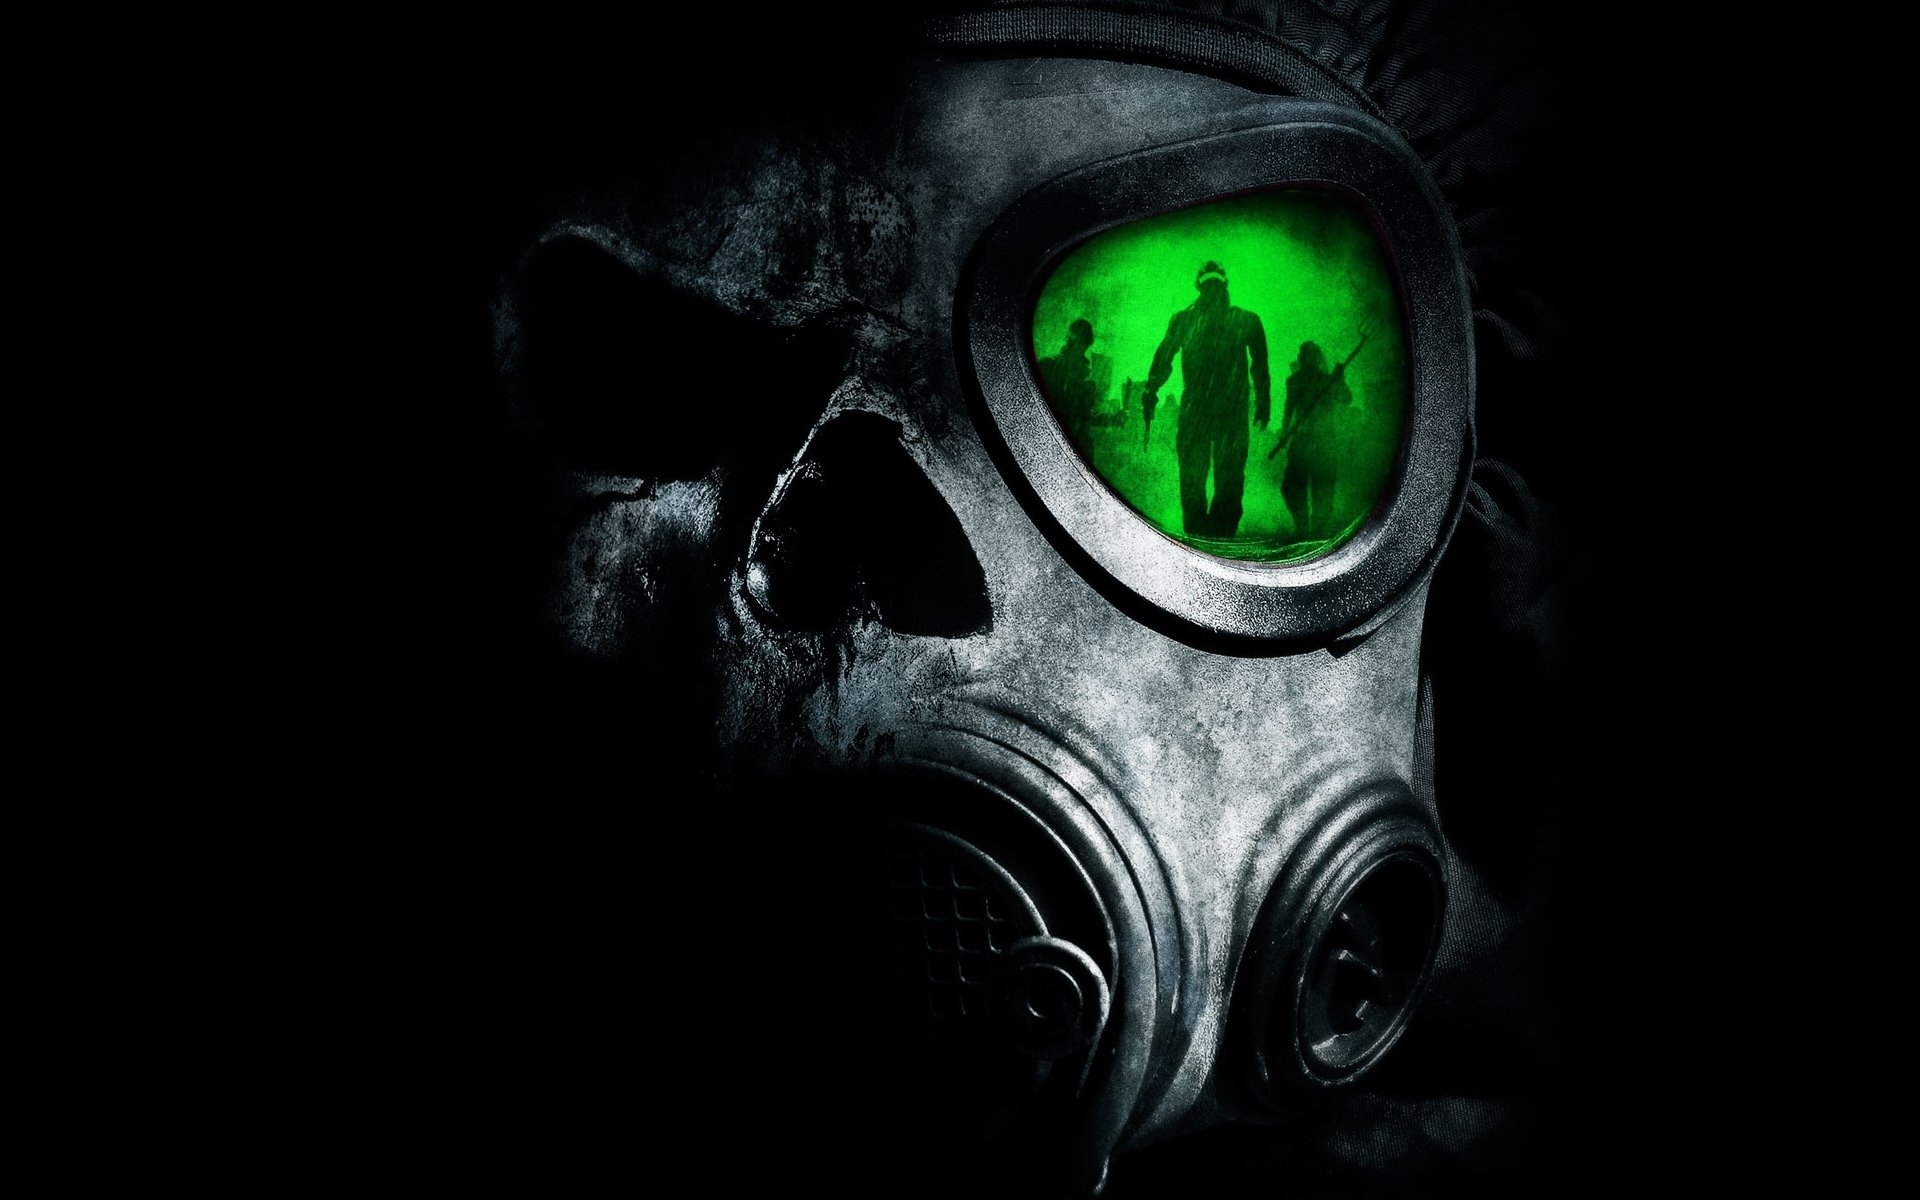 Download Zombie 7 Wallpapers Pictures Photos and Backgrounds 1920x1200